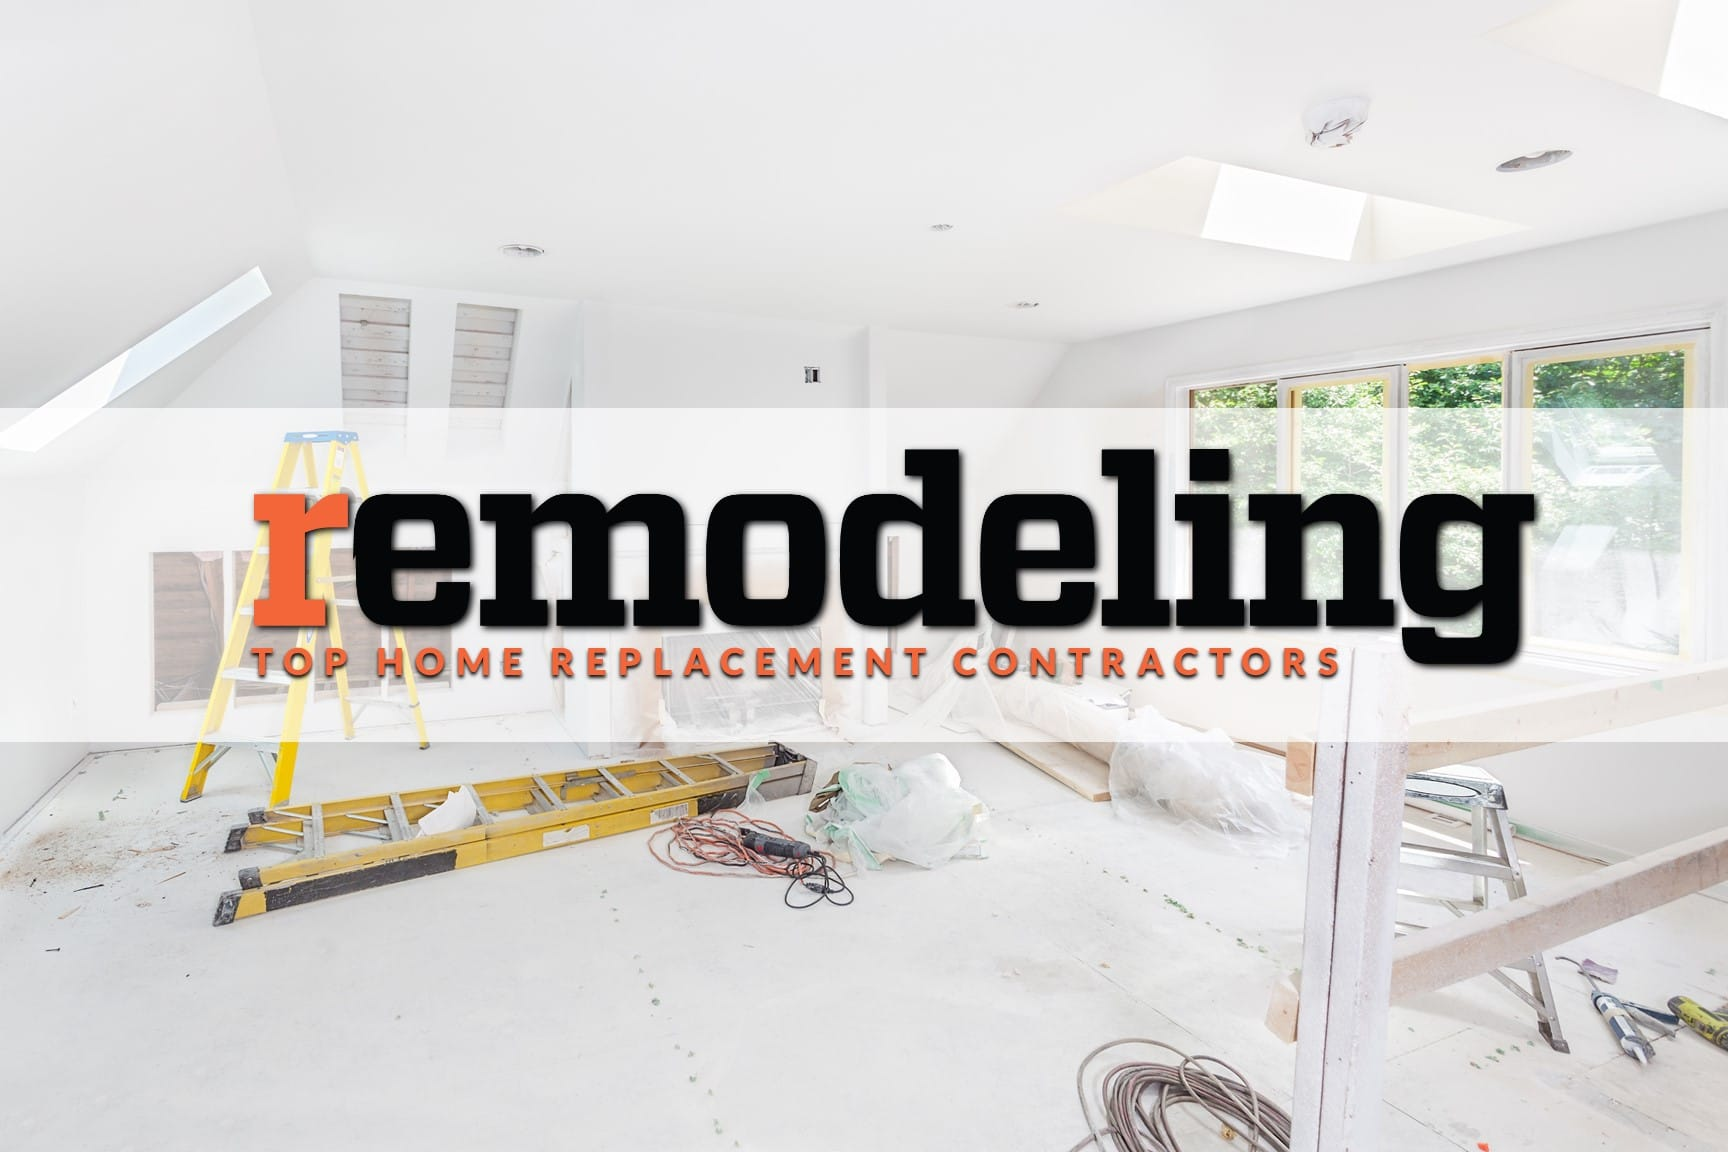 Remodeling Magazine Names Top Replacement Contractors For 2020